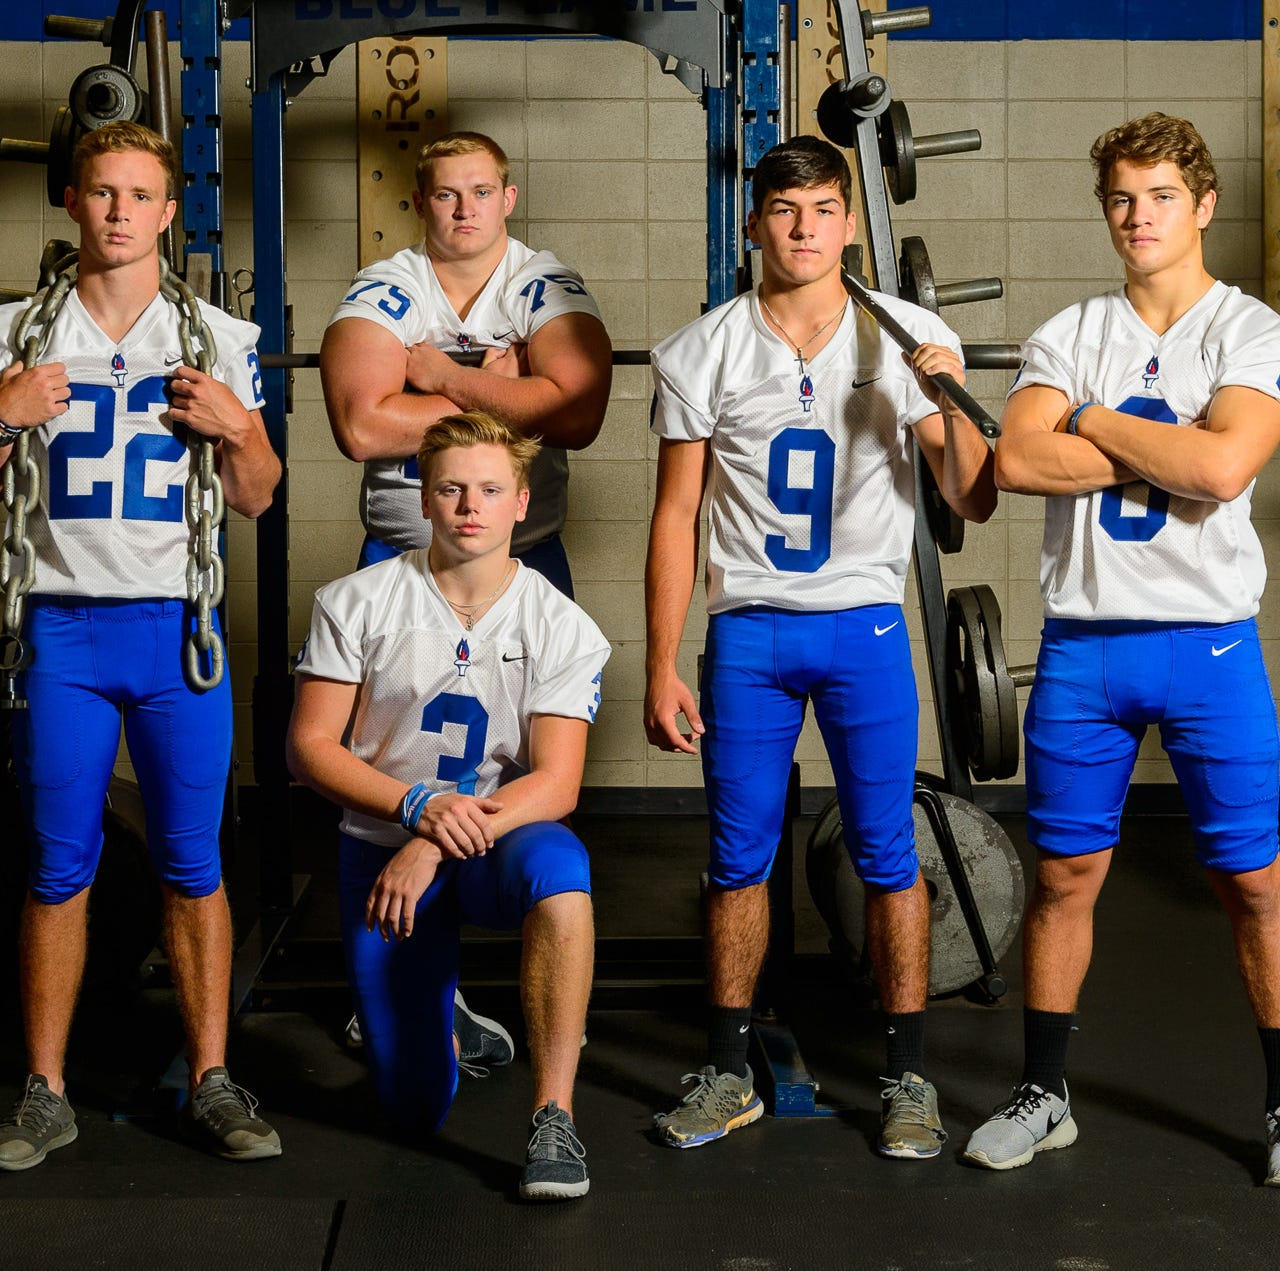 2018 football preview: Toughness, experience have Blue Flame feeling confident